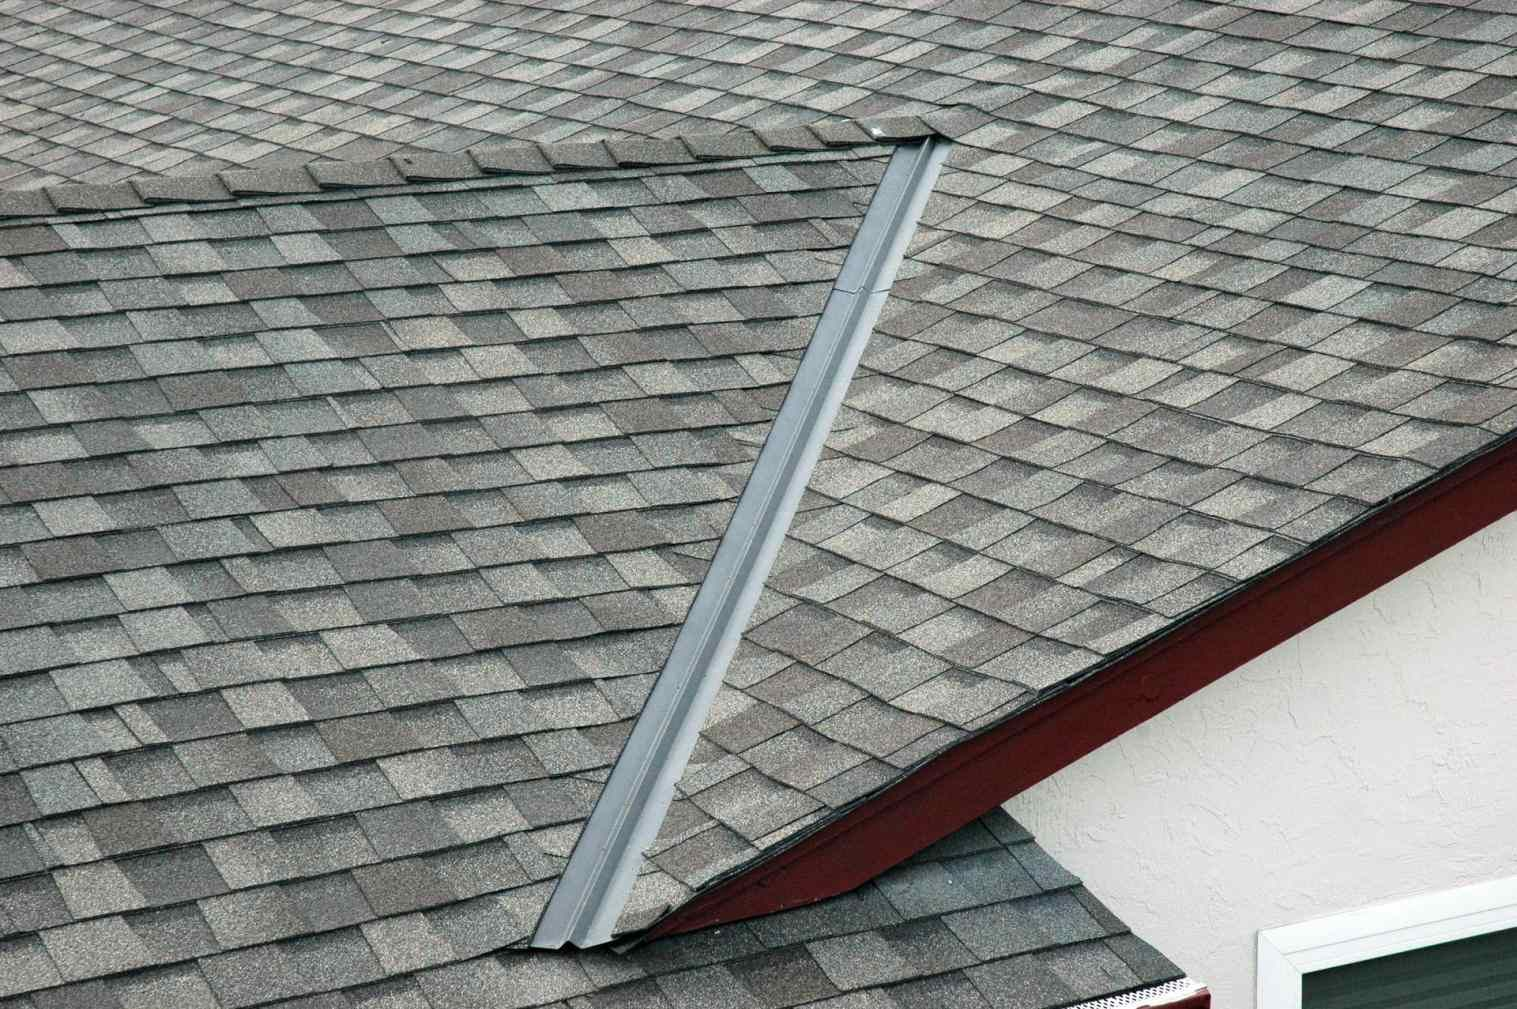 Cement Roof Shingles Alternative Energy Solar Thermal Roof Design